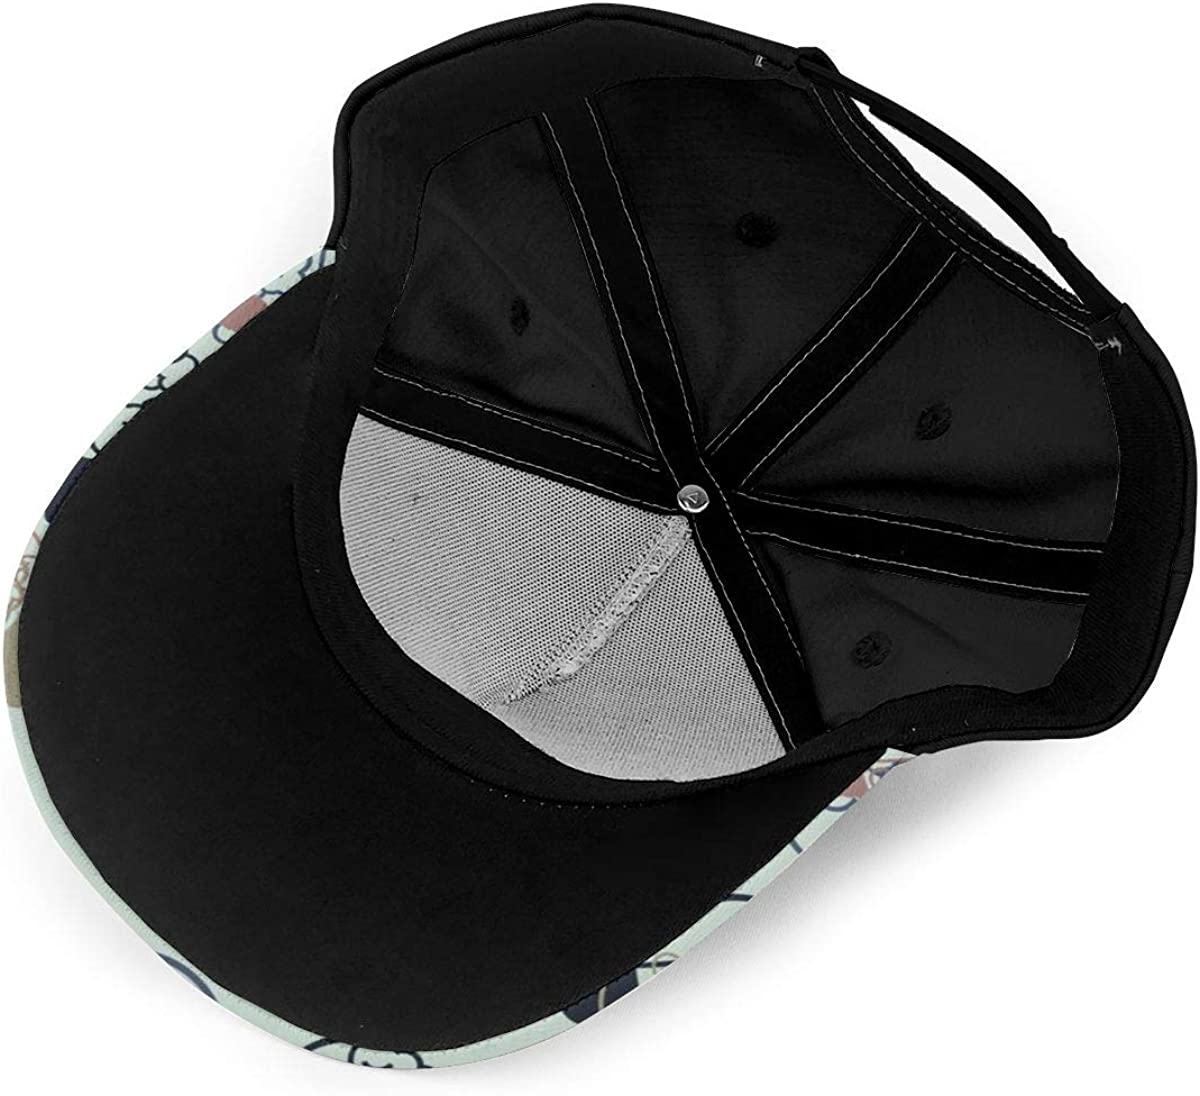 Light Bulb Style Brain Classic Baseball Cap Men Women Dad Hat Twill Adjustable Size Black